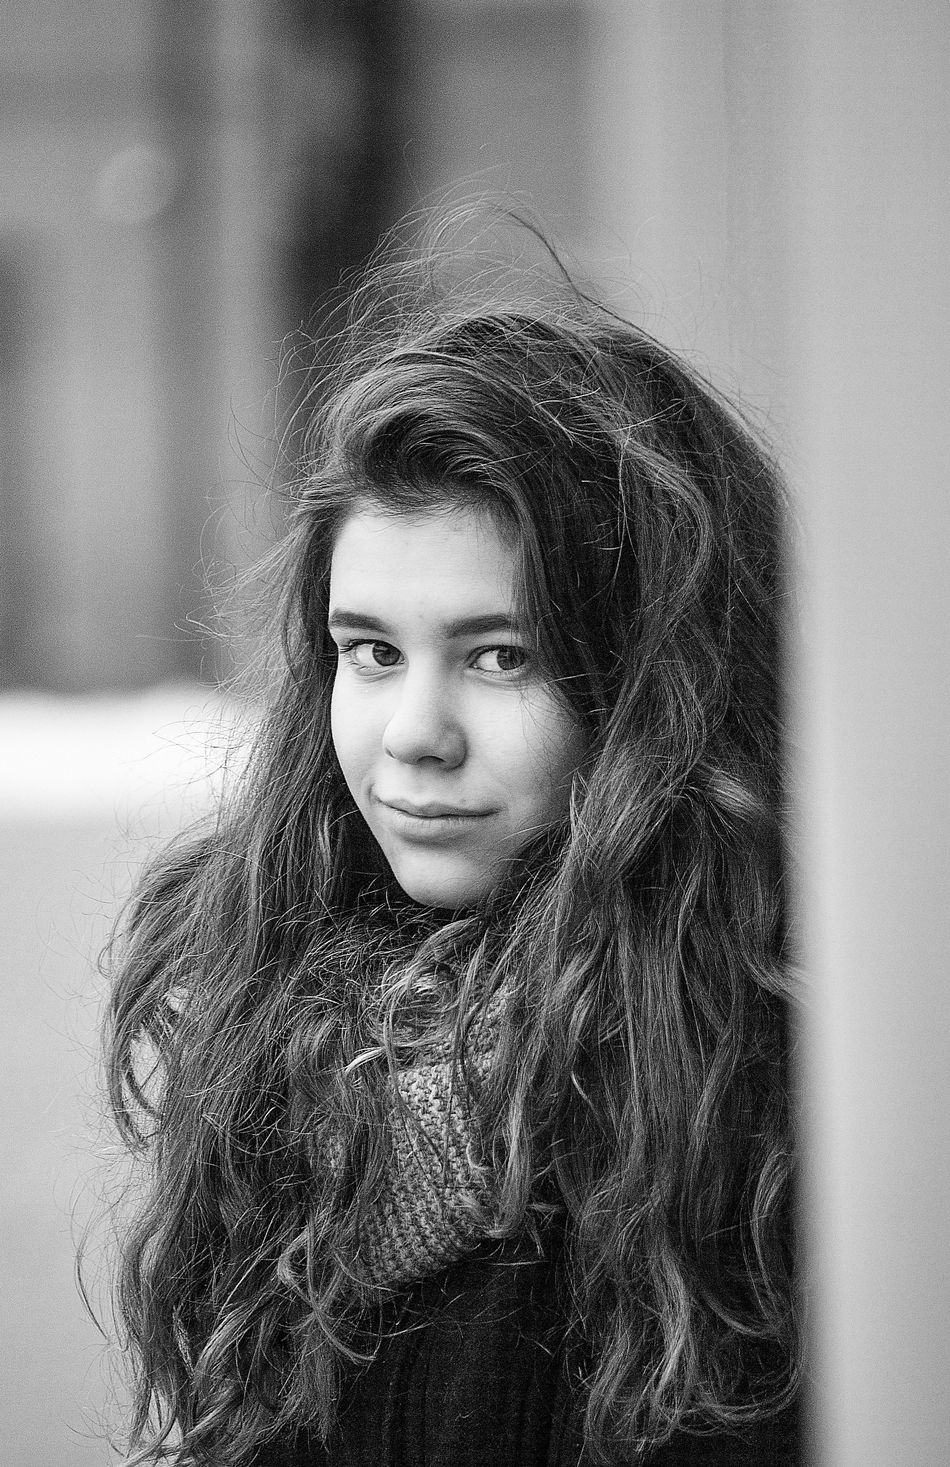 Bw_collection Blackandwhite Blackandwhite Photography Black And White Photography Black&white Blackandwhitephotography Black And White Black & White Long Hair One Person Portrait Looking At Camera Young Adult Russia EyeEm Best Shots EyeEm Best Shots - Black + White 2016 Pelageya